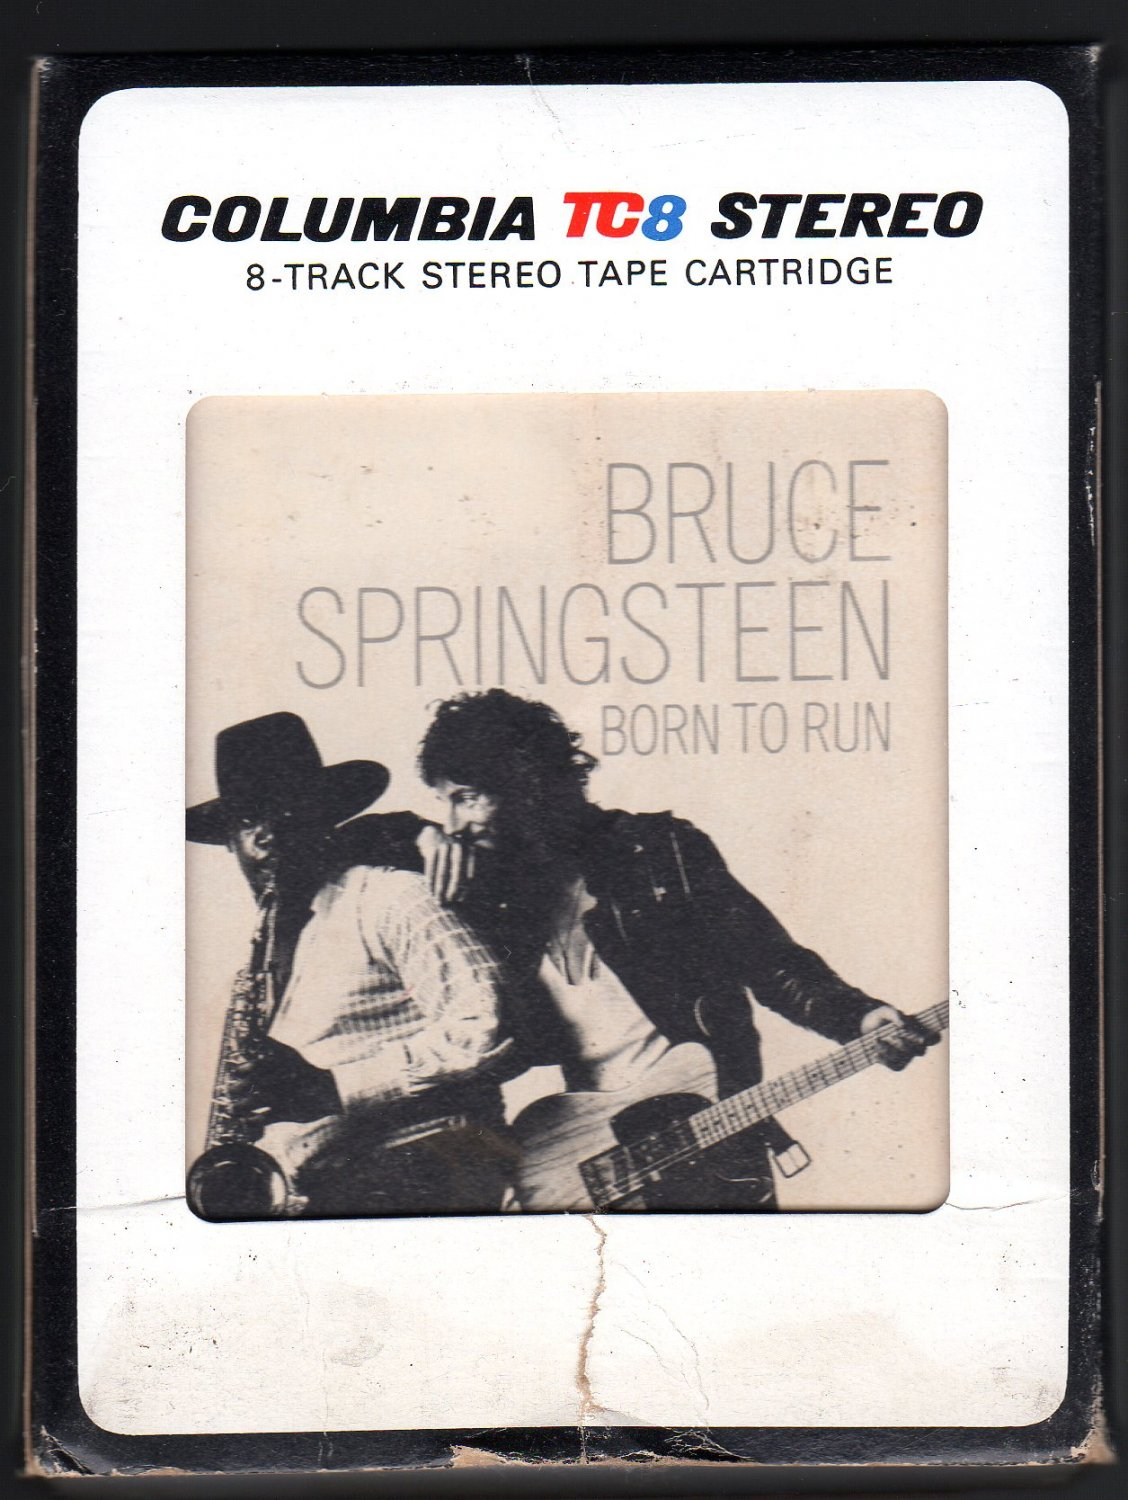 Bruce Springsteen - Born To Run 1975 CBS A18A 8-TRACK TAPE